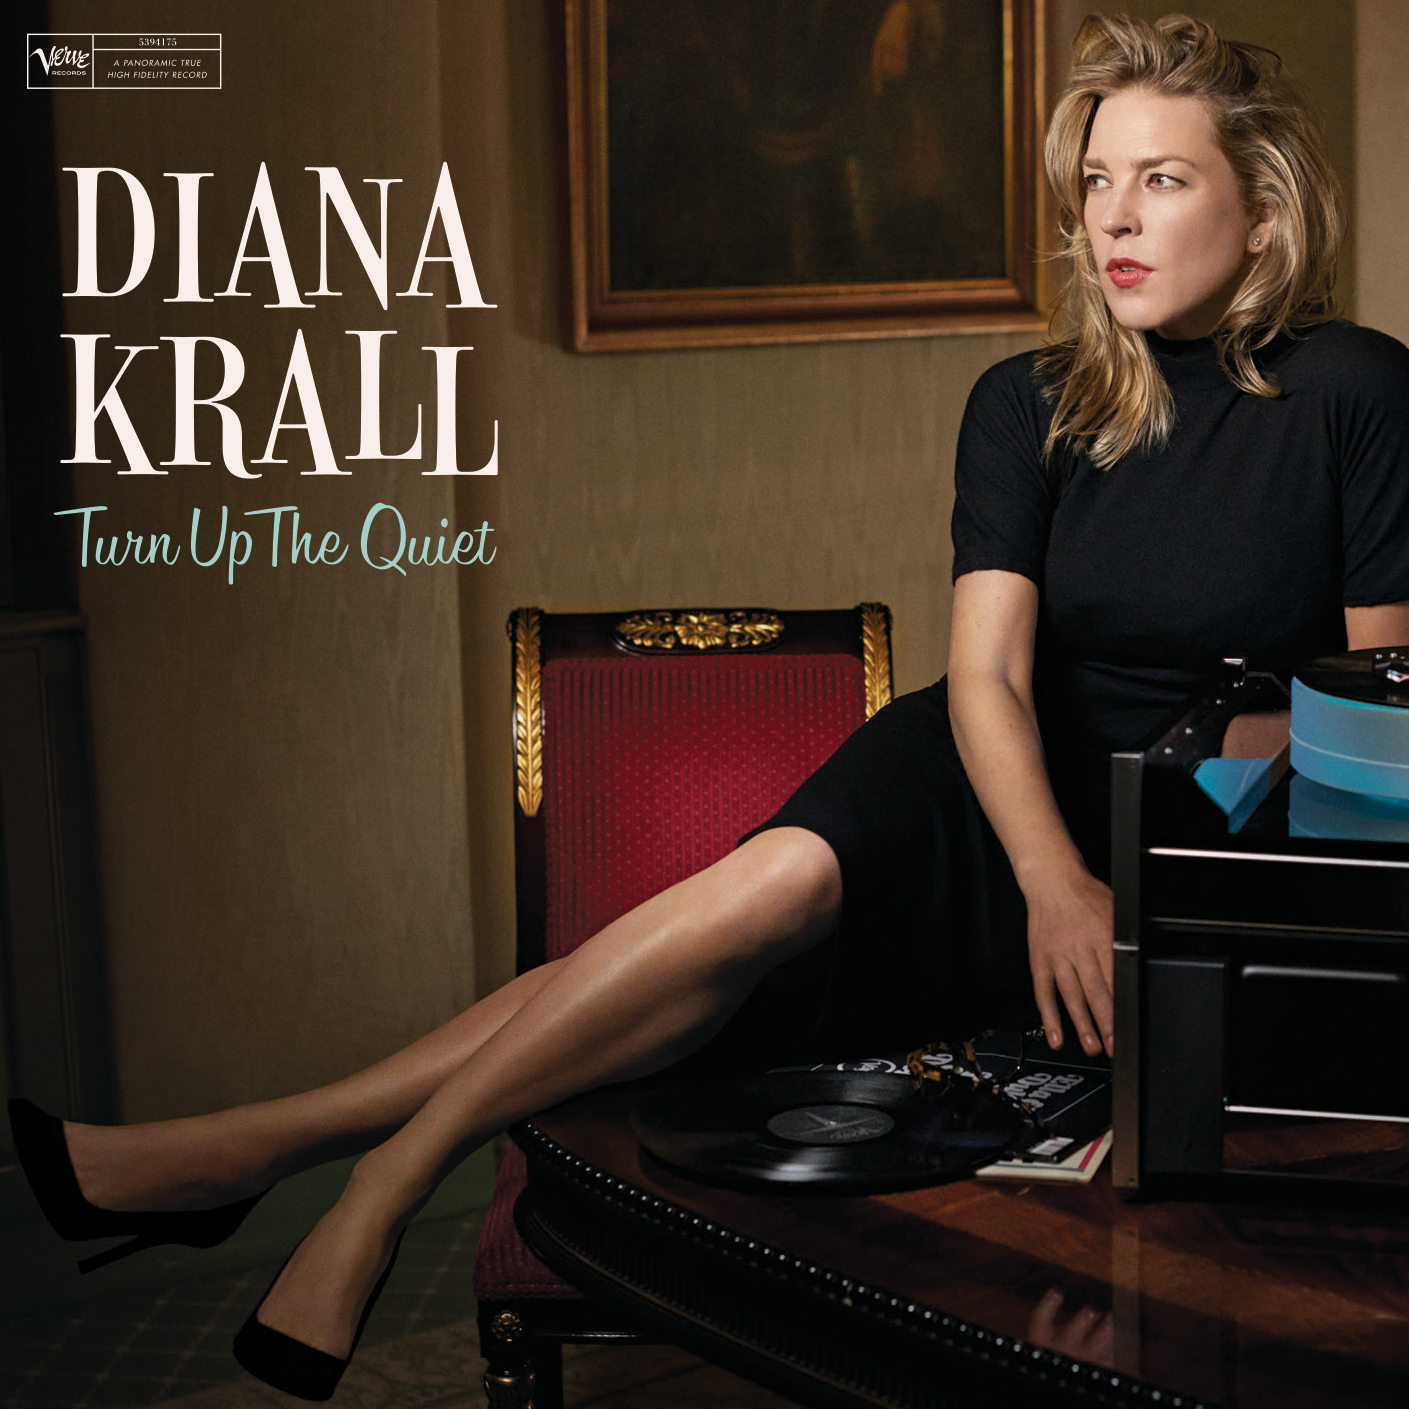 Diana Krall Turn Up The Quiet Numbered Limited Edition Hybrid Stereo Japanese Import SACD